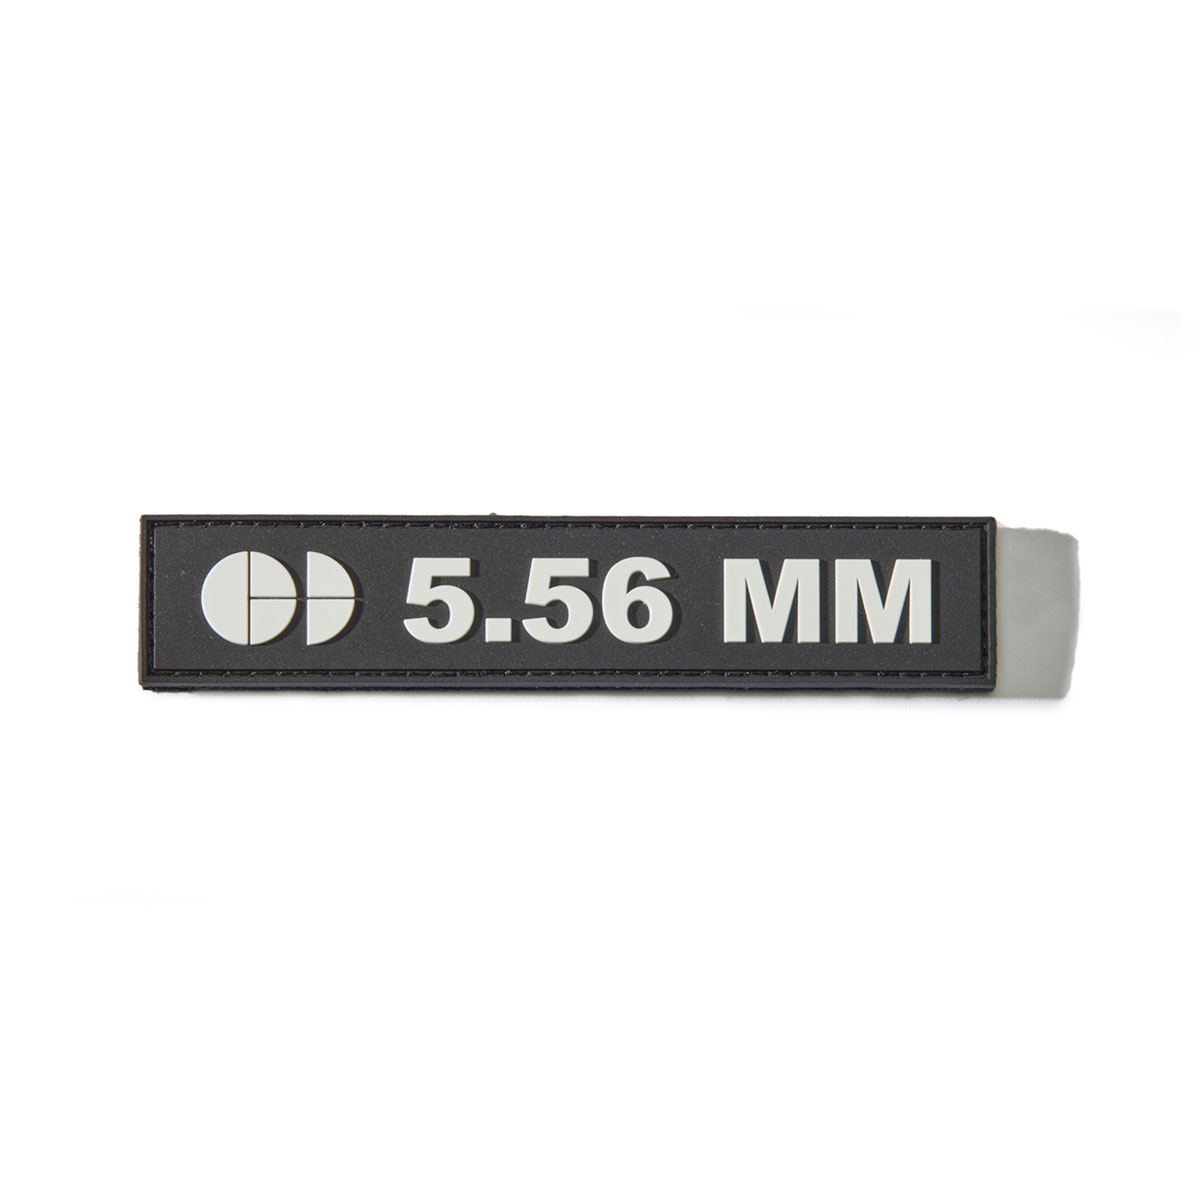 Cloud Defensive Ammo Patch 5.56mm